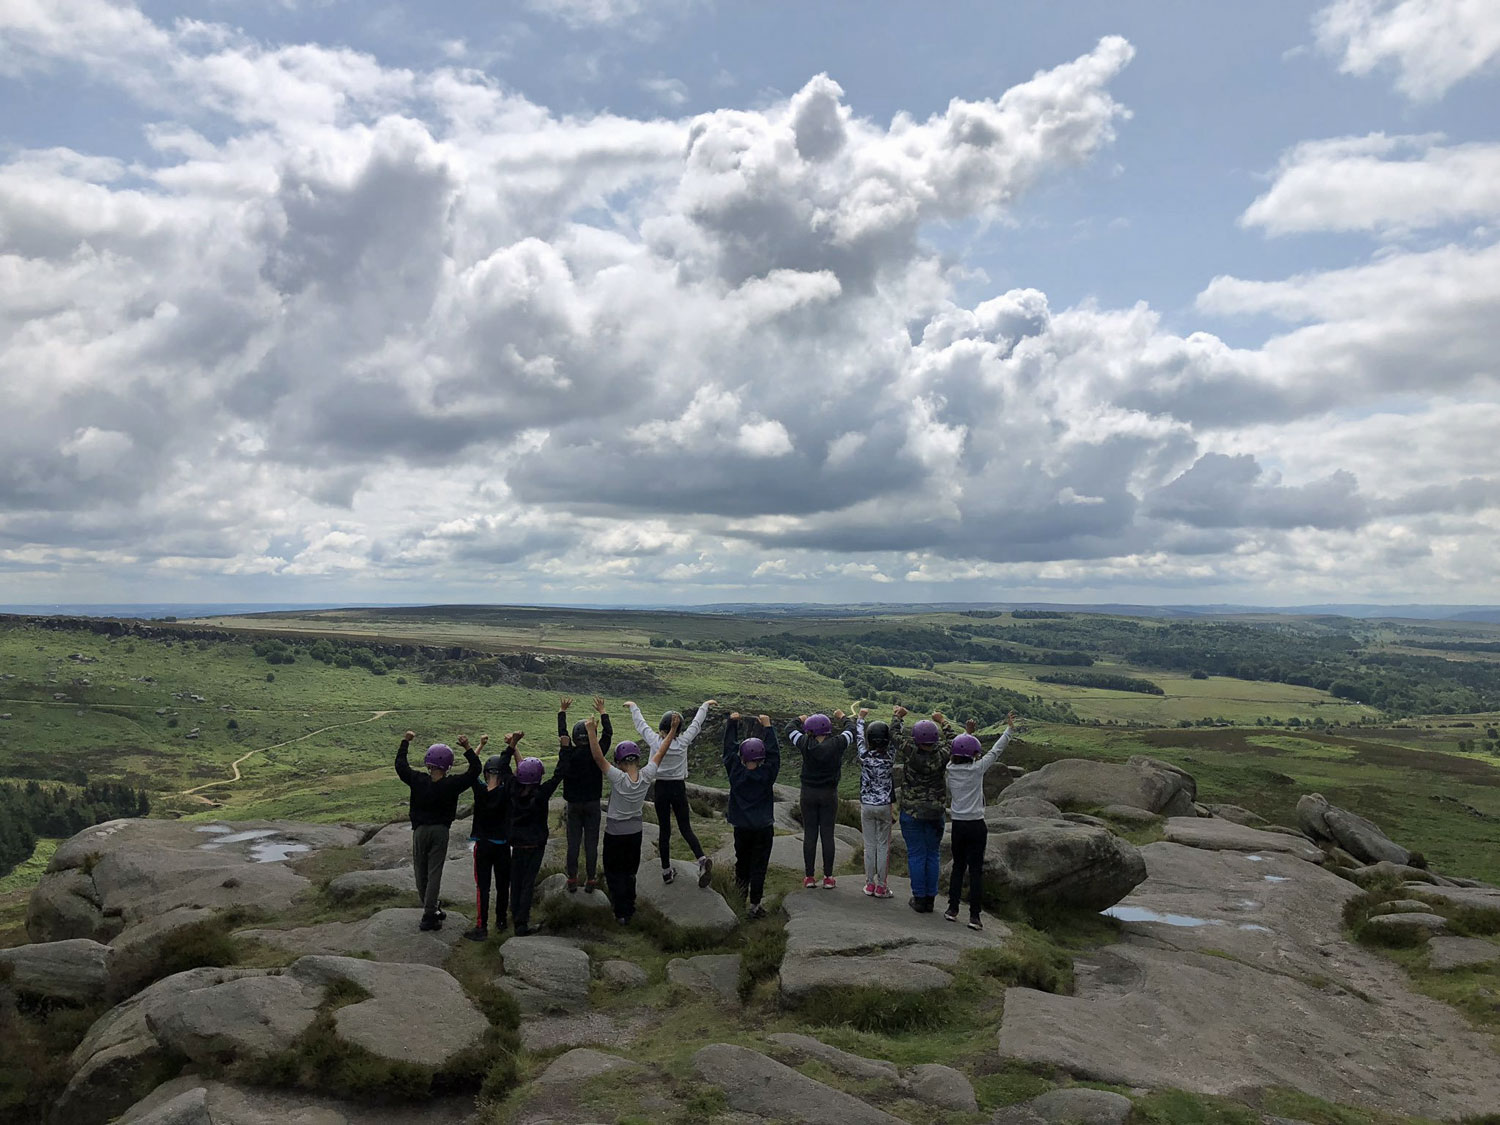 School children in helmets stand on on an edge looking out over the vast Peak District scenery with their arms raised jubilantly